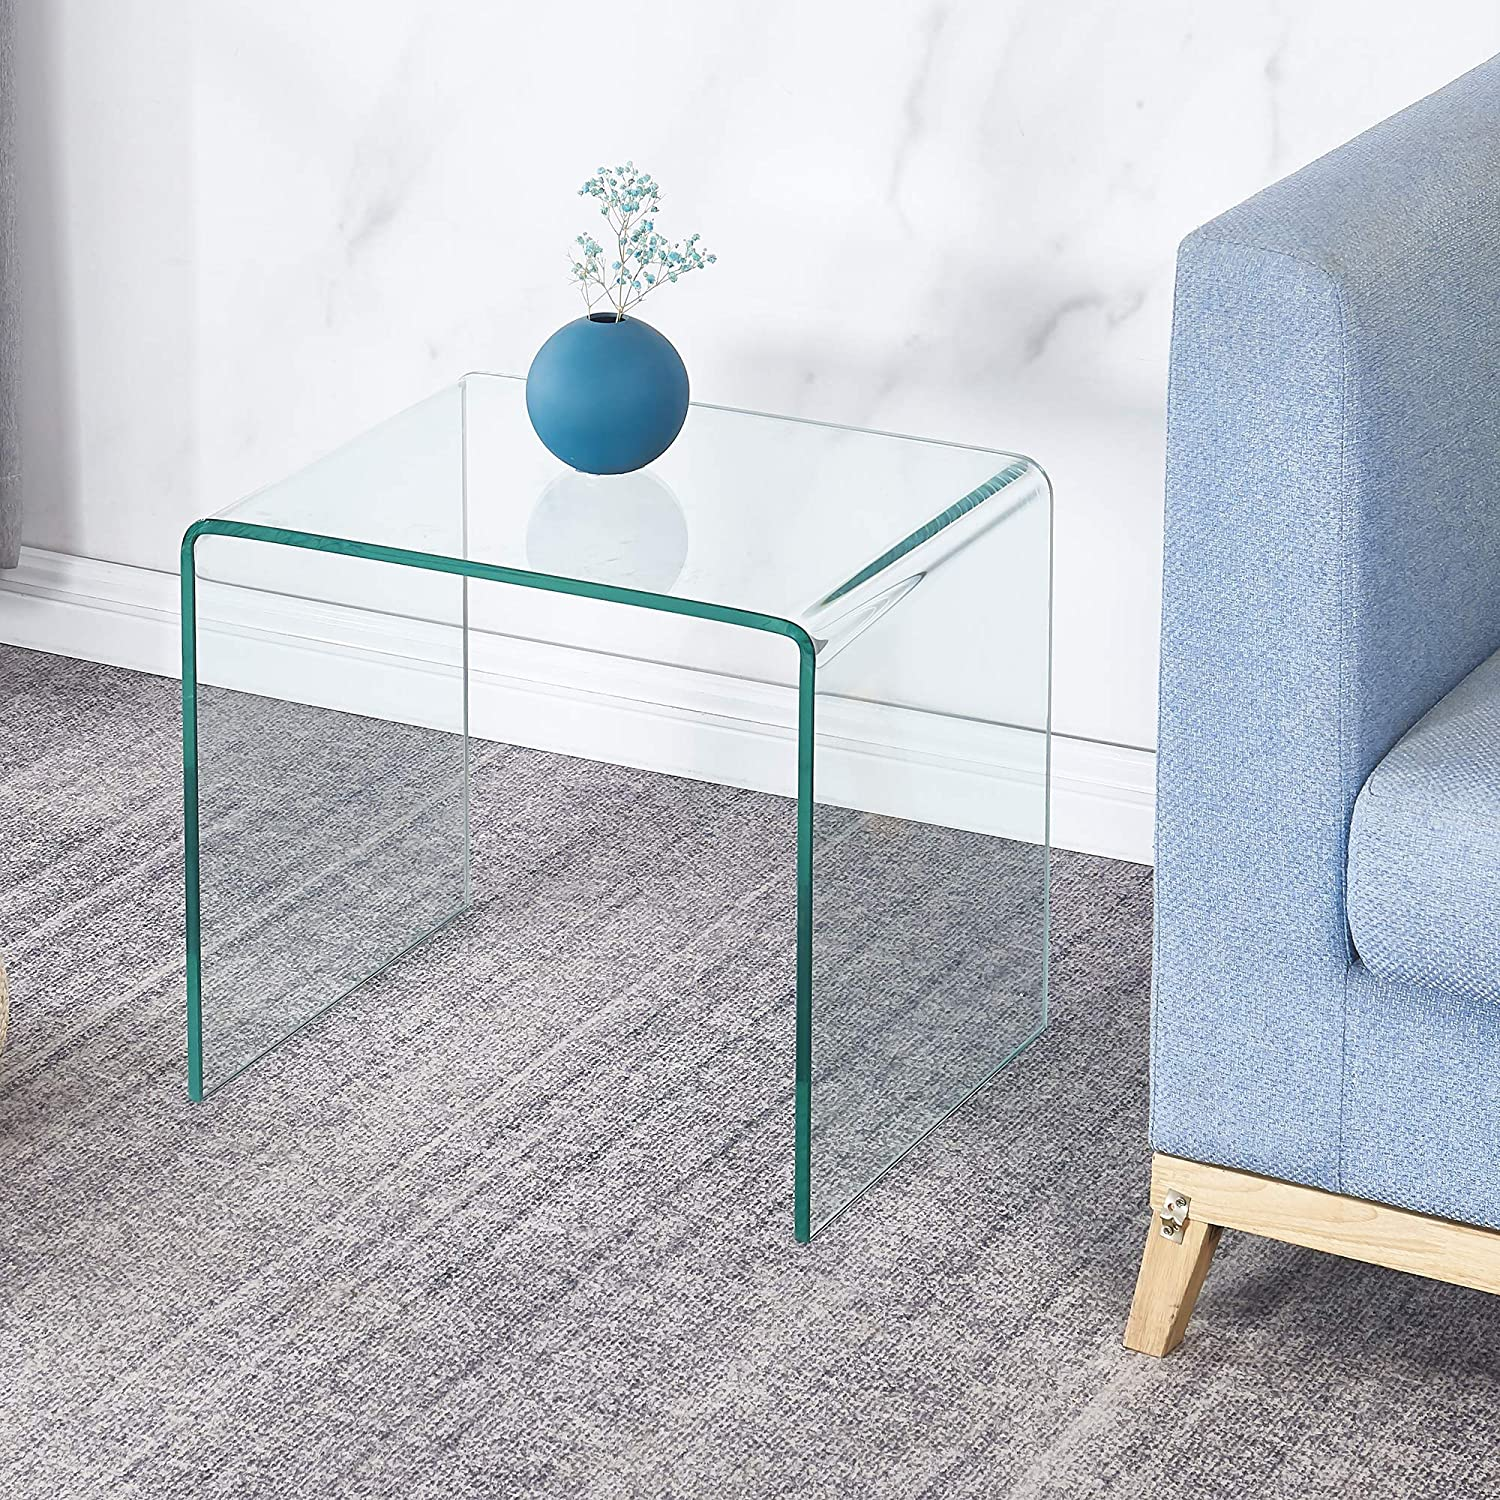 Glass End Selling Chicago Mall rankings Tables Living Room Table Beside S Sofa